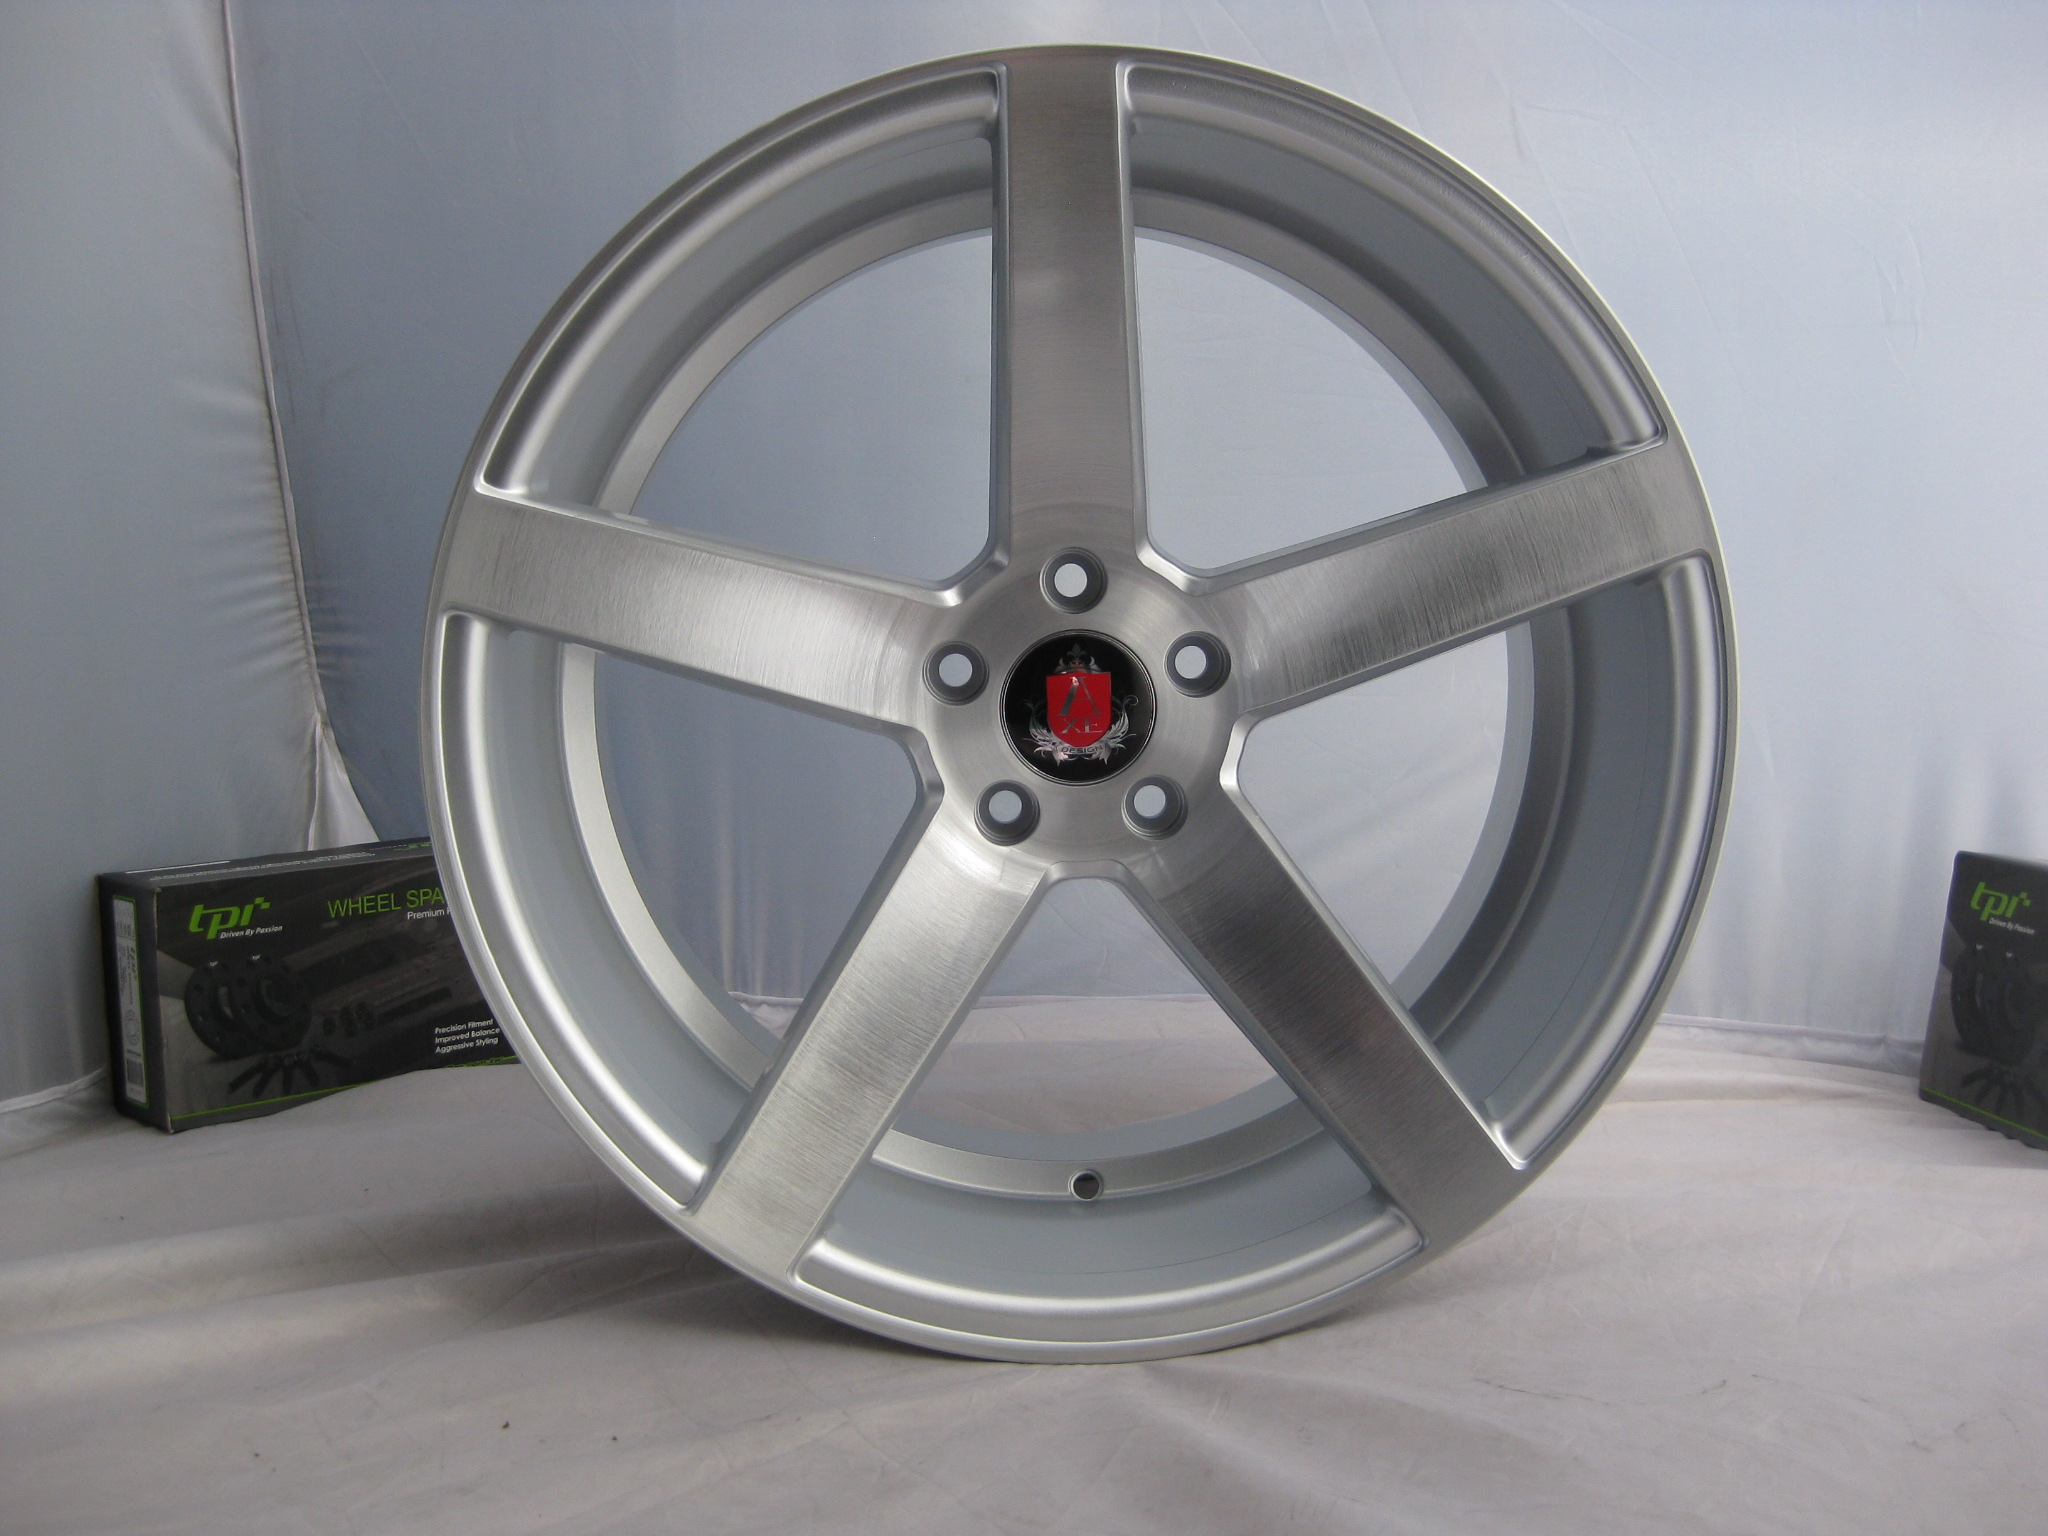 "NEW 20"" AXE EX18 DEEP CONCAVE ALLOY WHEELS IN SILVER/BRUSHED  WITH MASSIVE 6"" DEEP DISH, BIG 10.5"" REAR et40/42"